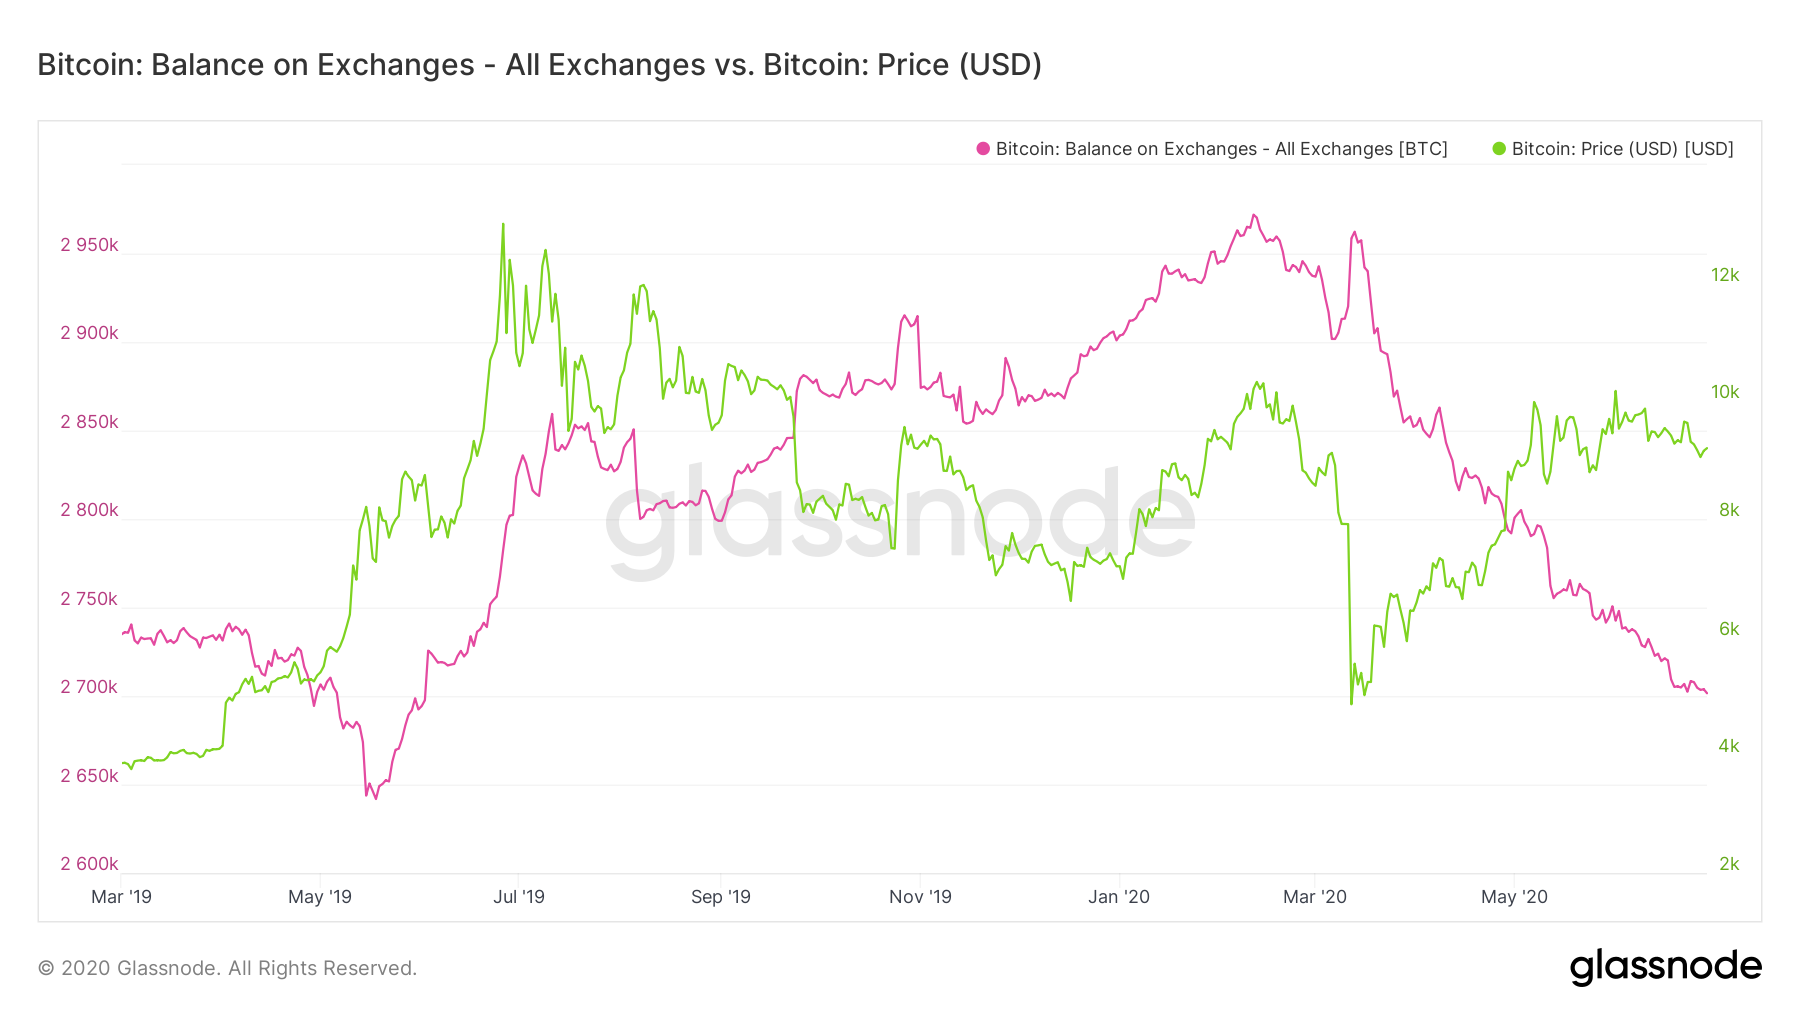 187,000 BTC Drained: Over $2 Billion in Bitcoin Leave the Leading Exchanges Given That June 5